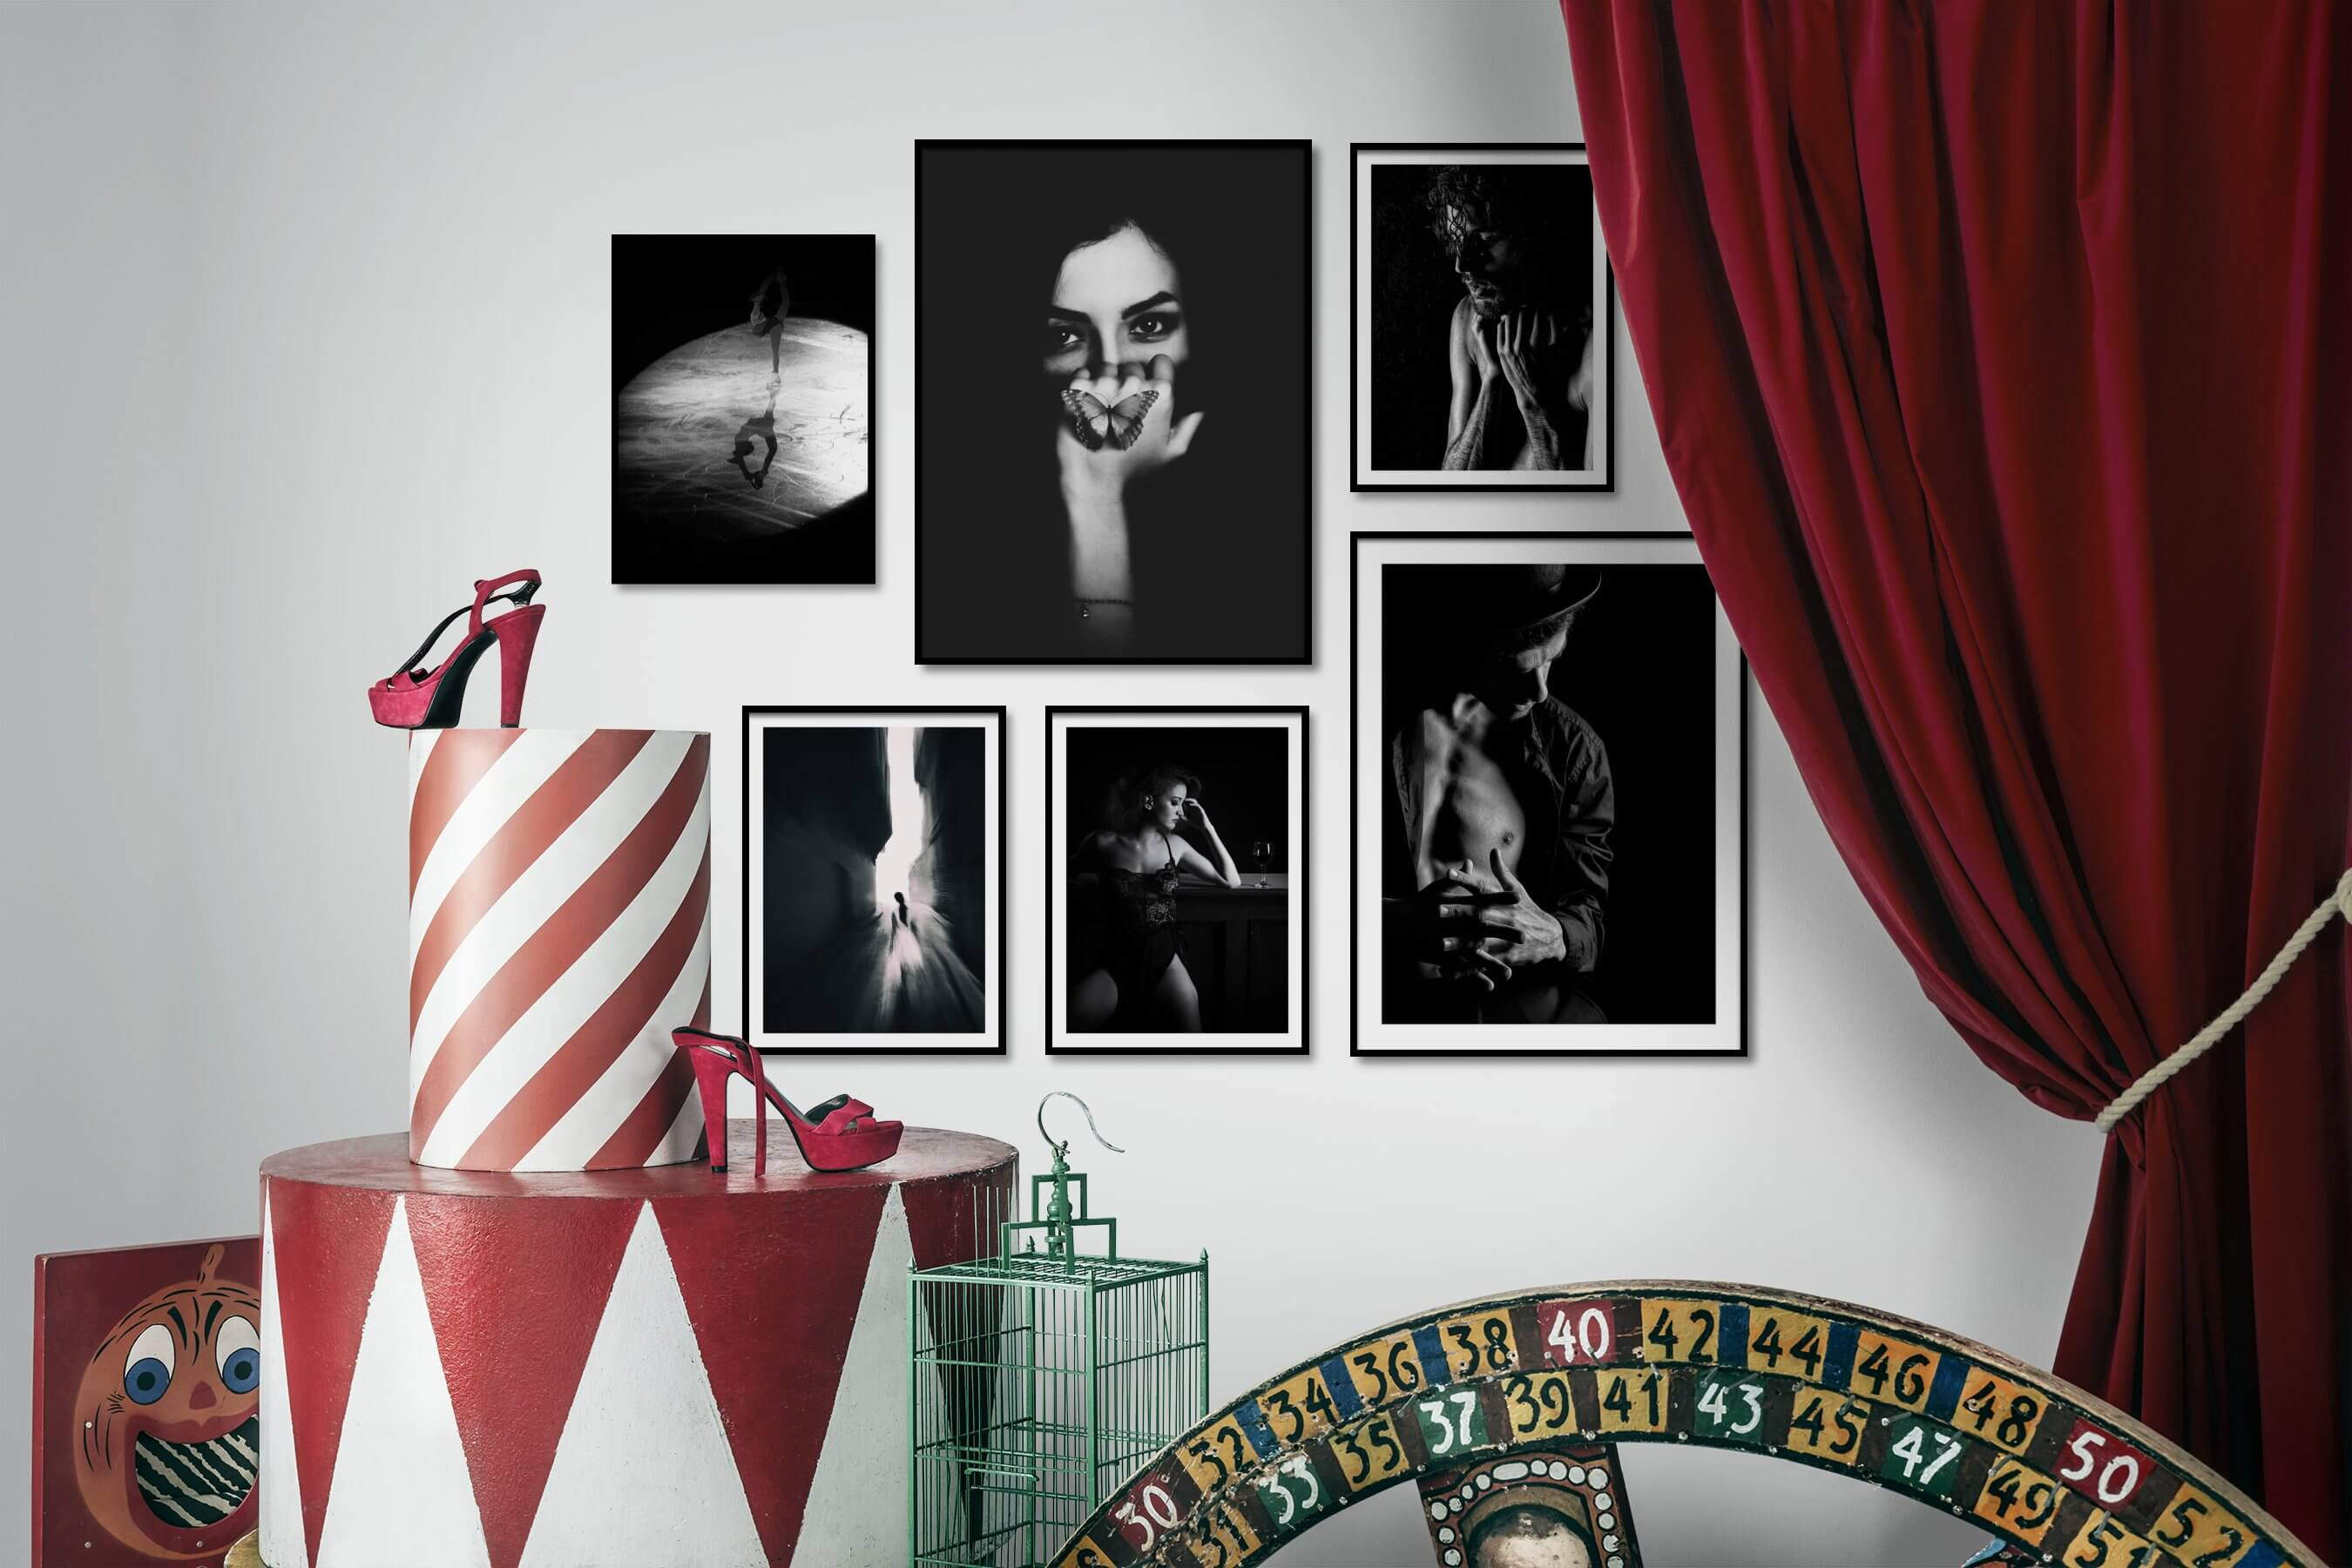 Gallery wall idea with six framed pictures arranged on a wall depicting Fashion & Beauty, Black & White, Dark Tones, For the Minimalist, Artsy, For the Moderate, and City Life